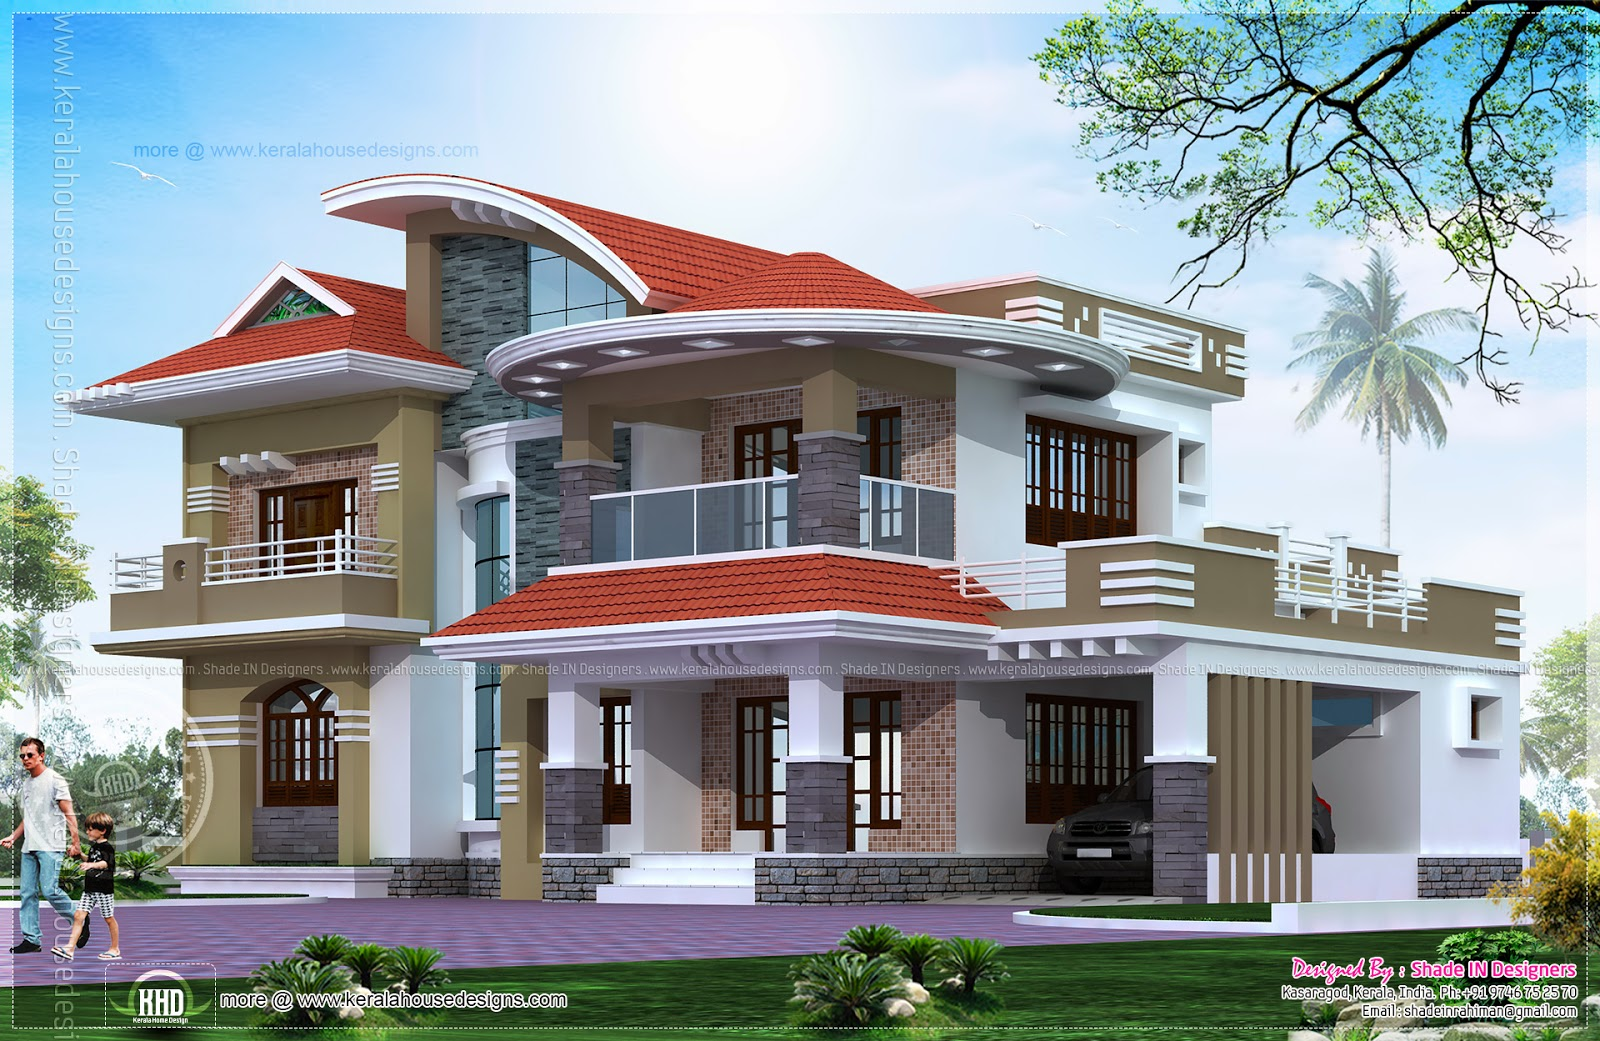 5 bedroom luxury house in kasaragod kerala home design for Small villa plans in kerala